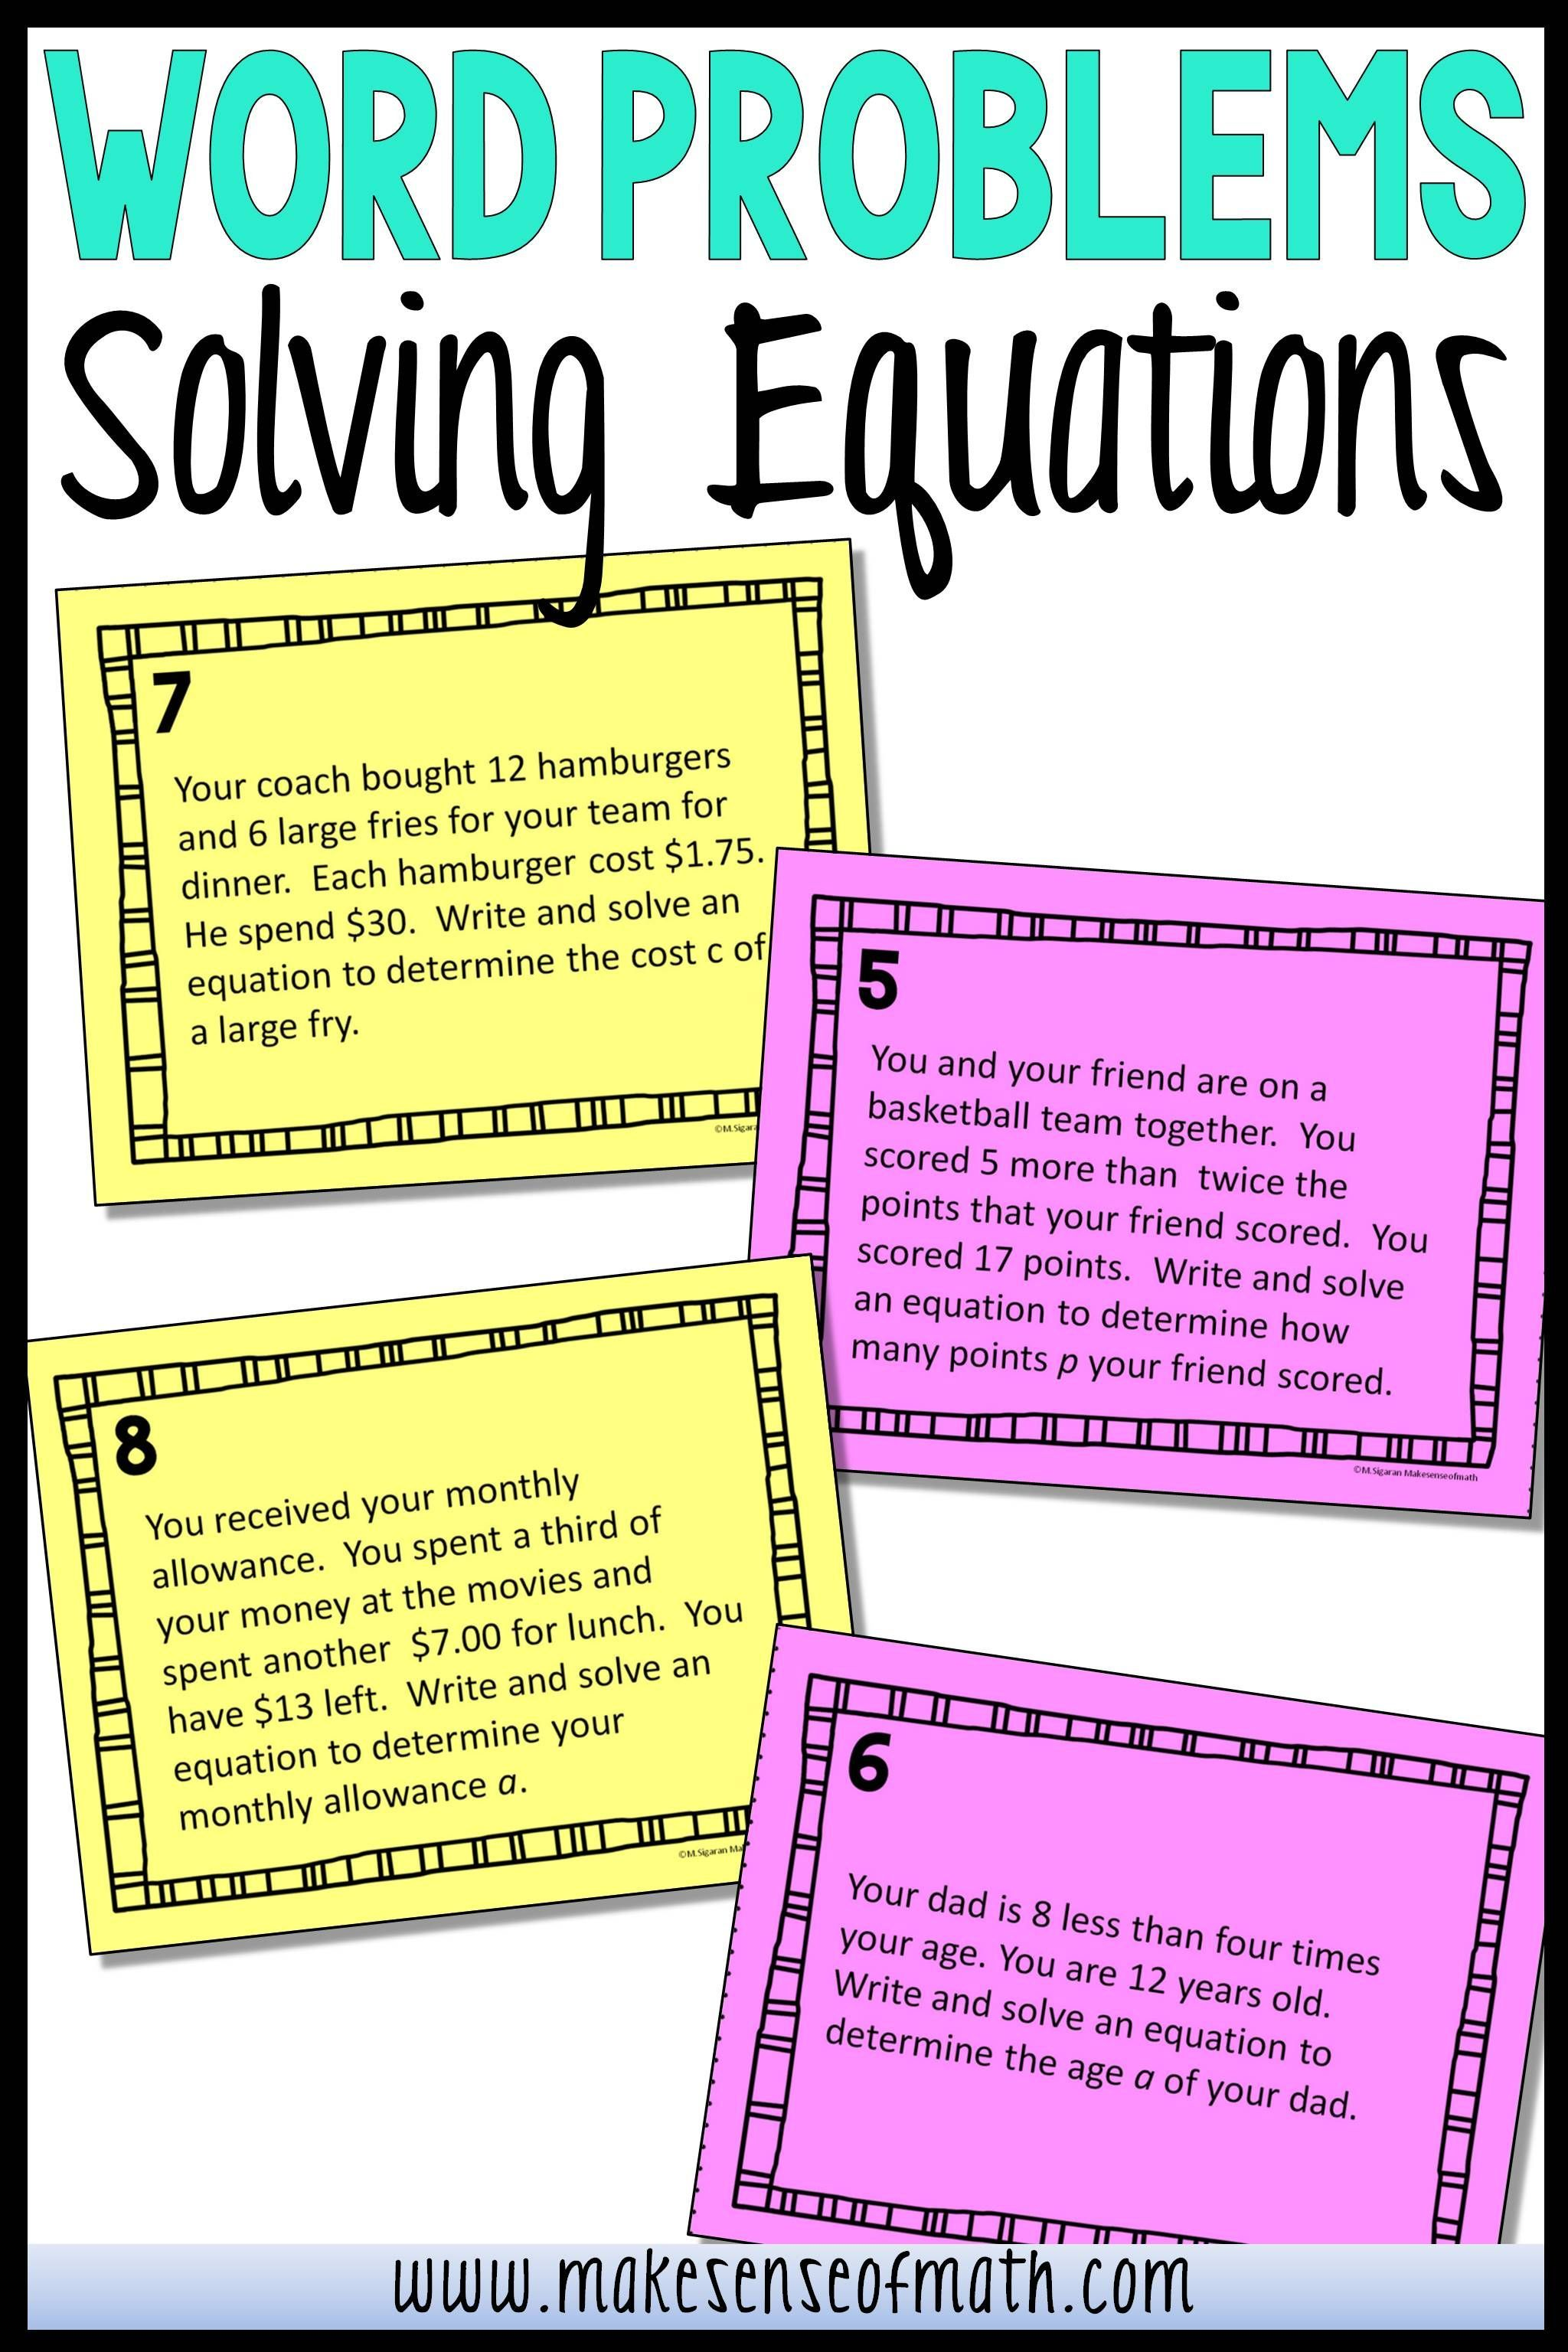 Typing Math Equations In Word Math Equations In